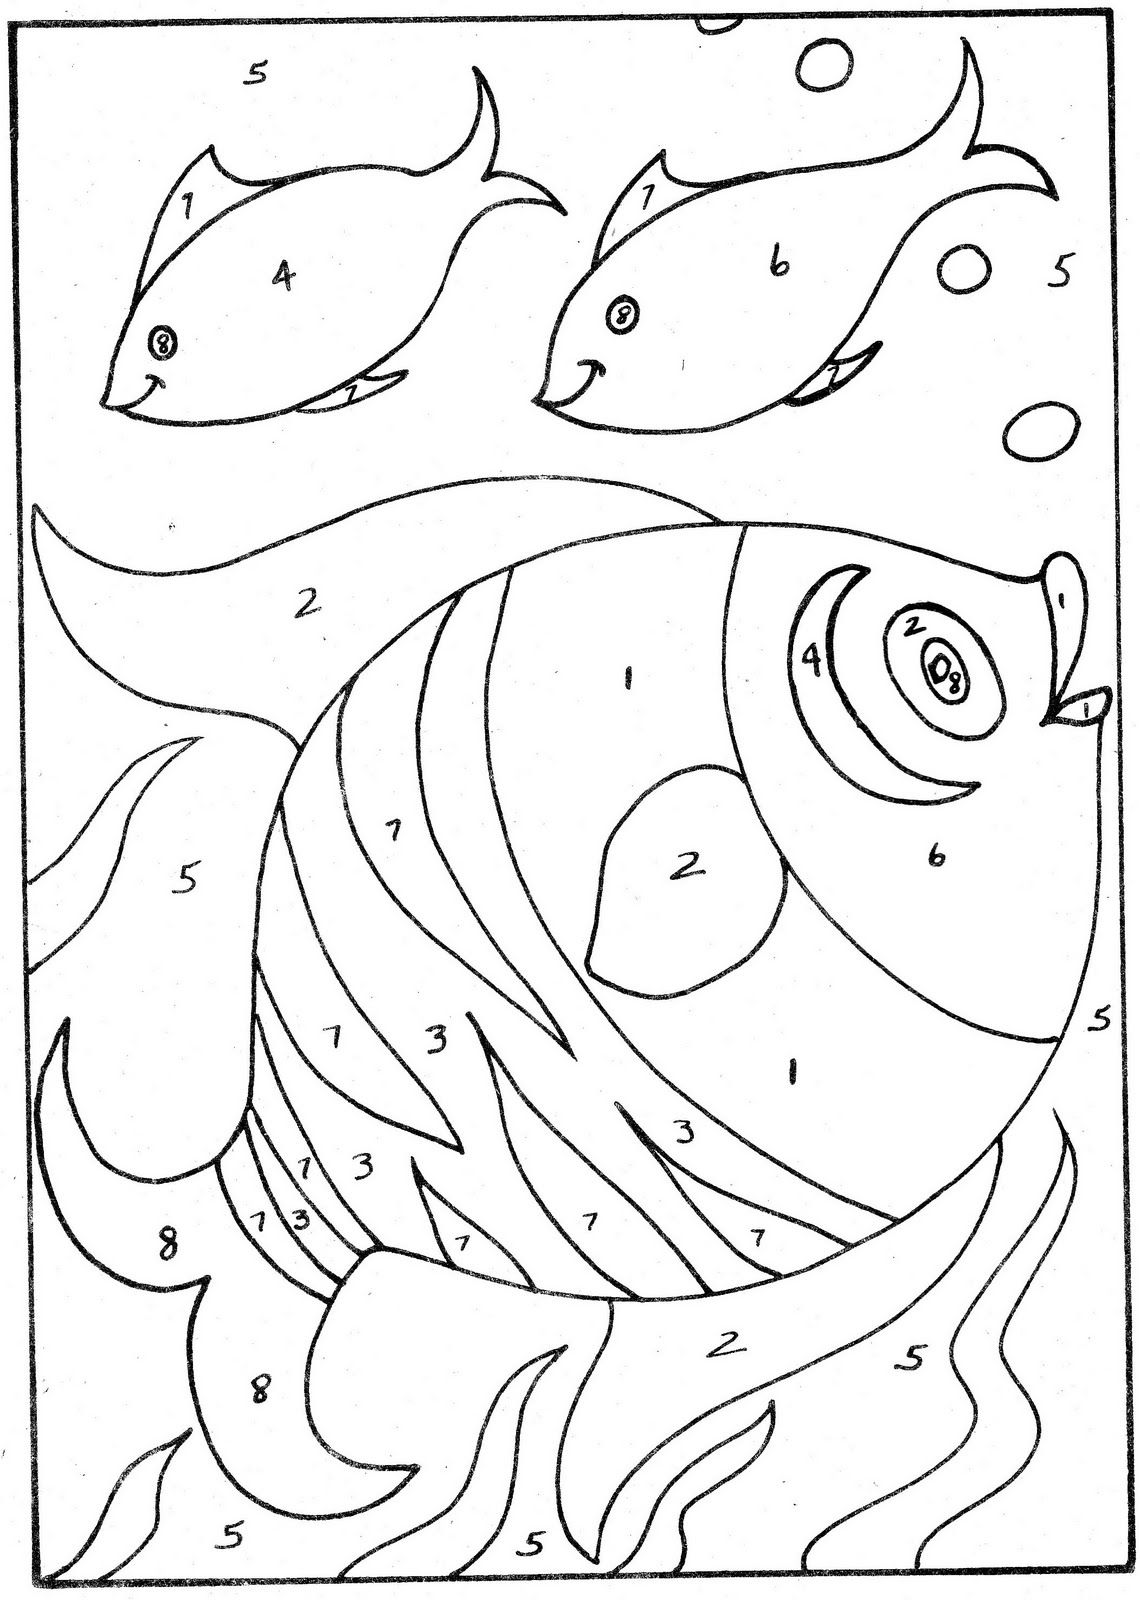 Coloring Pages For Kids : simple color by number Simple Color By ...